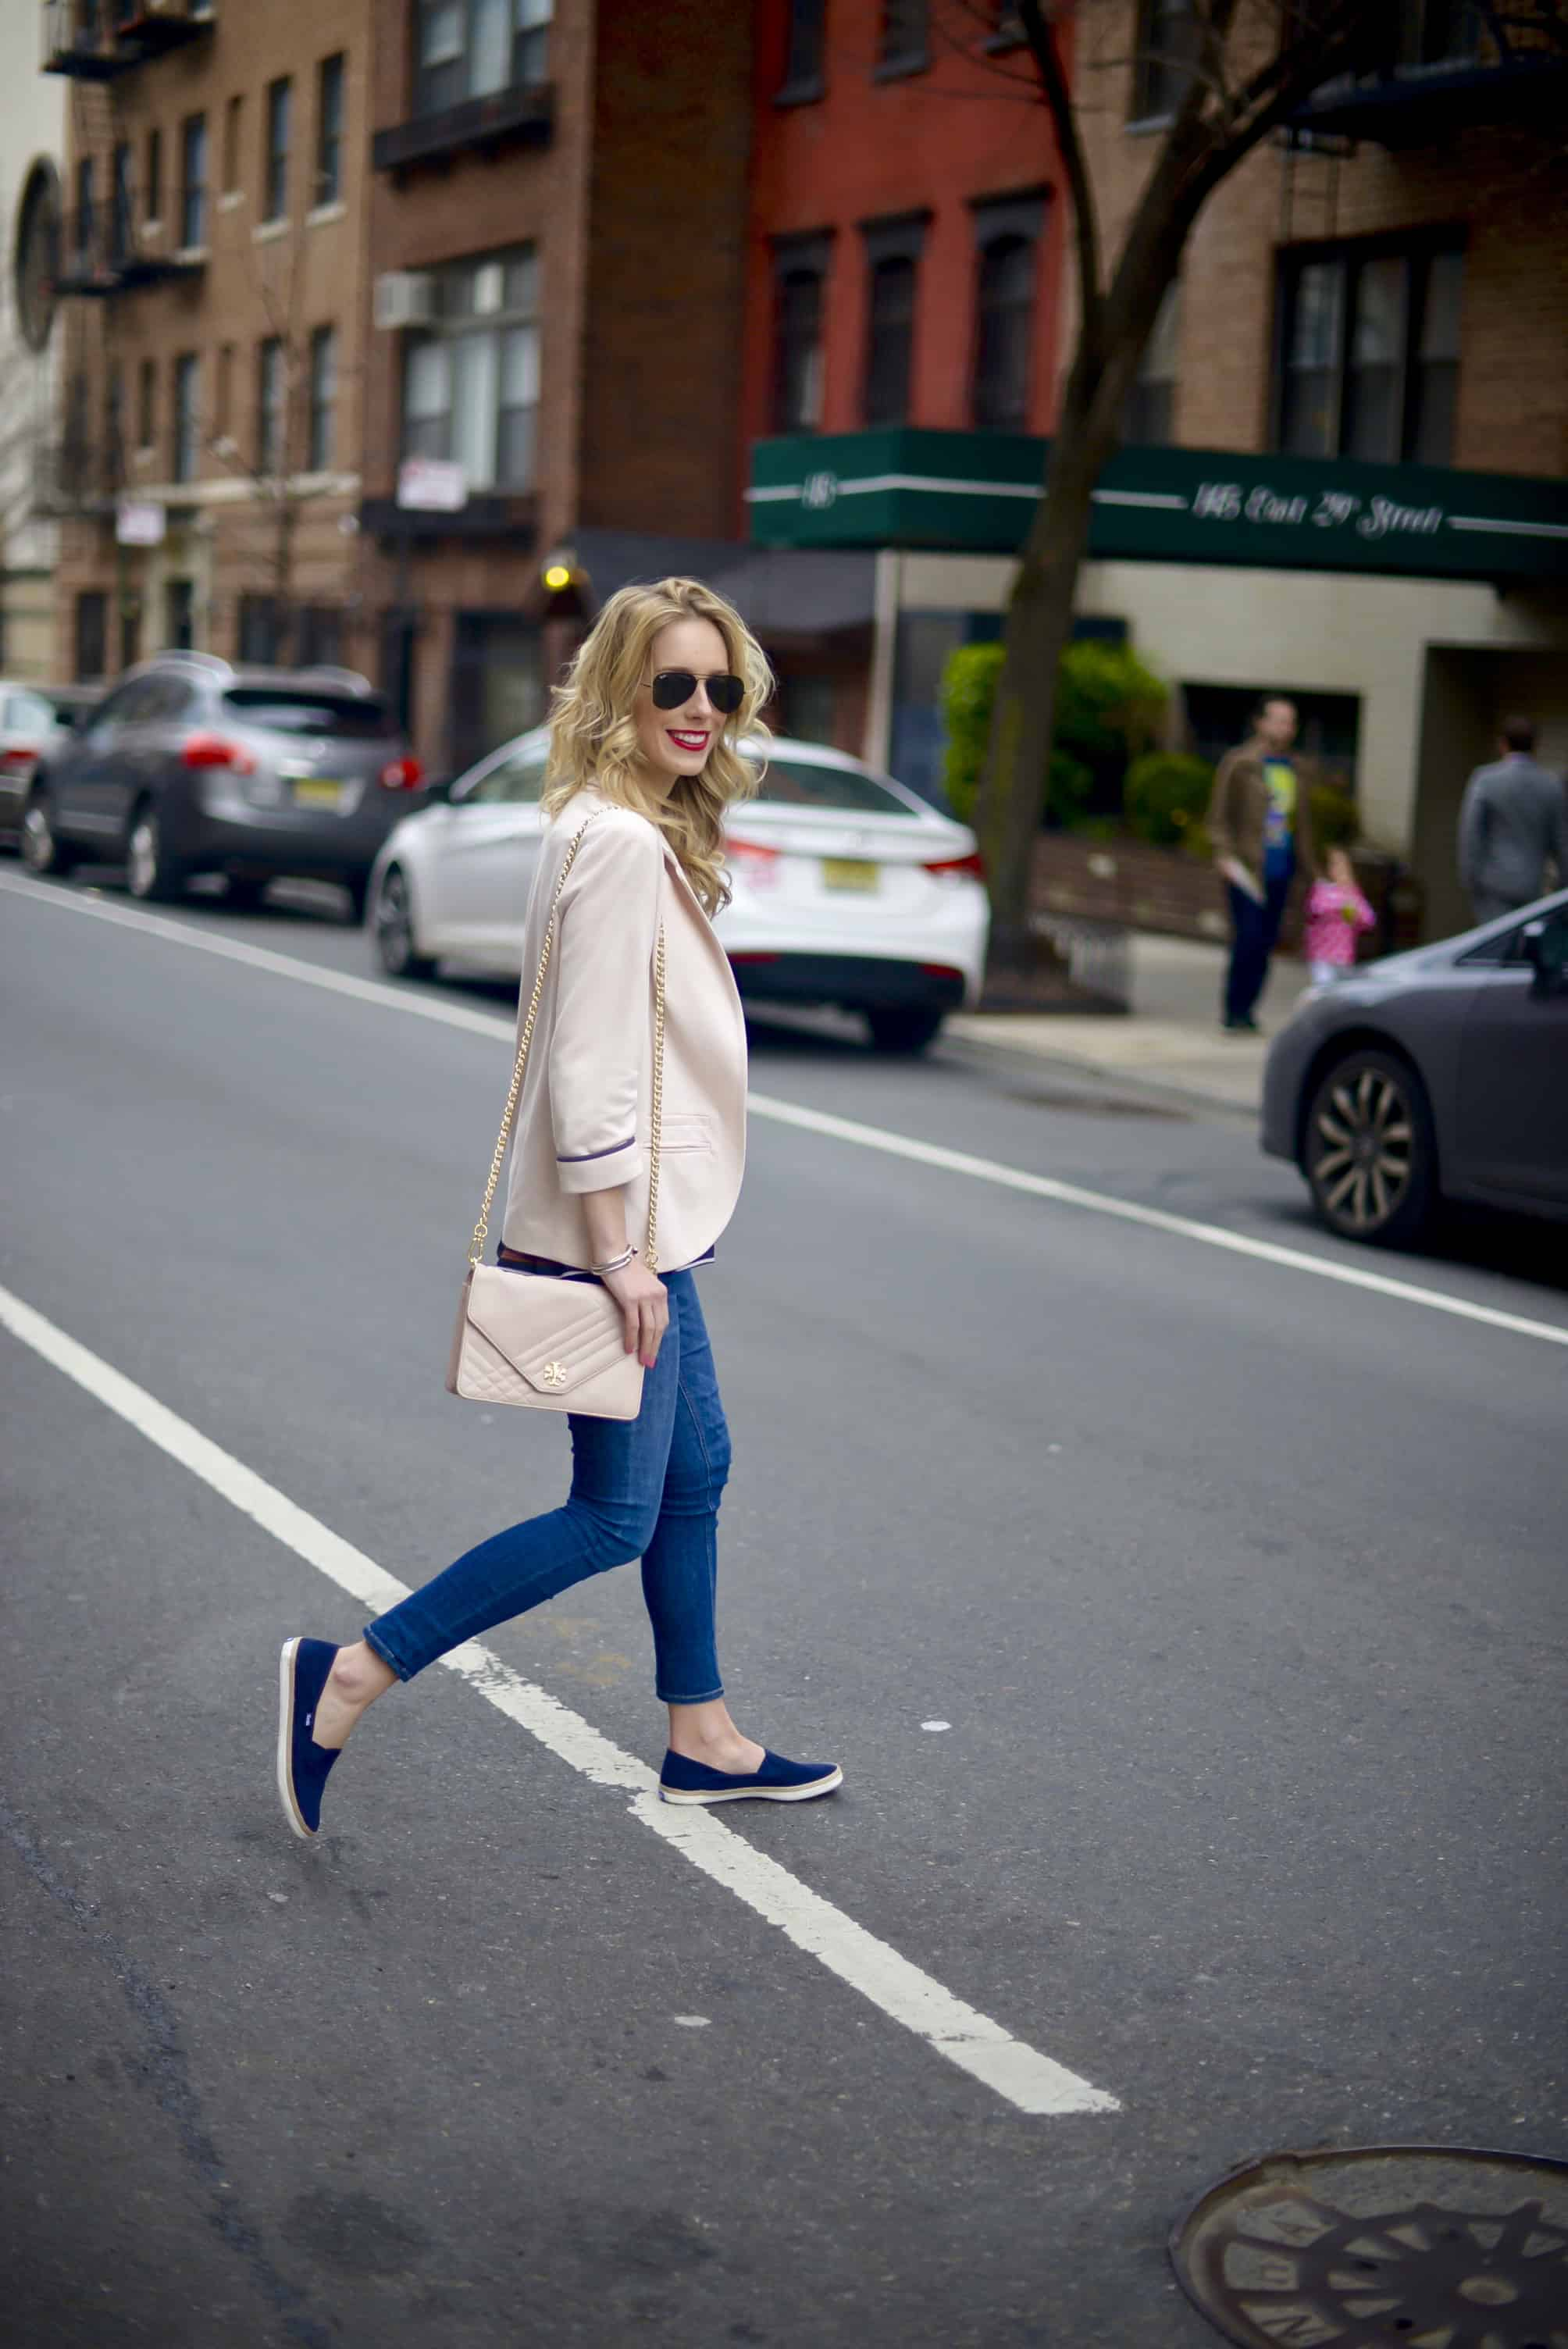 How To Style Keds Keds Outfit Ideas White Sneakers